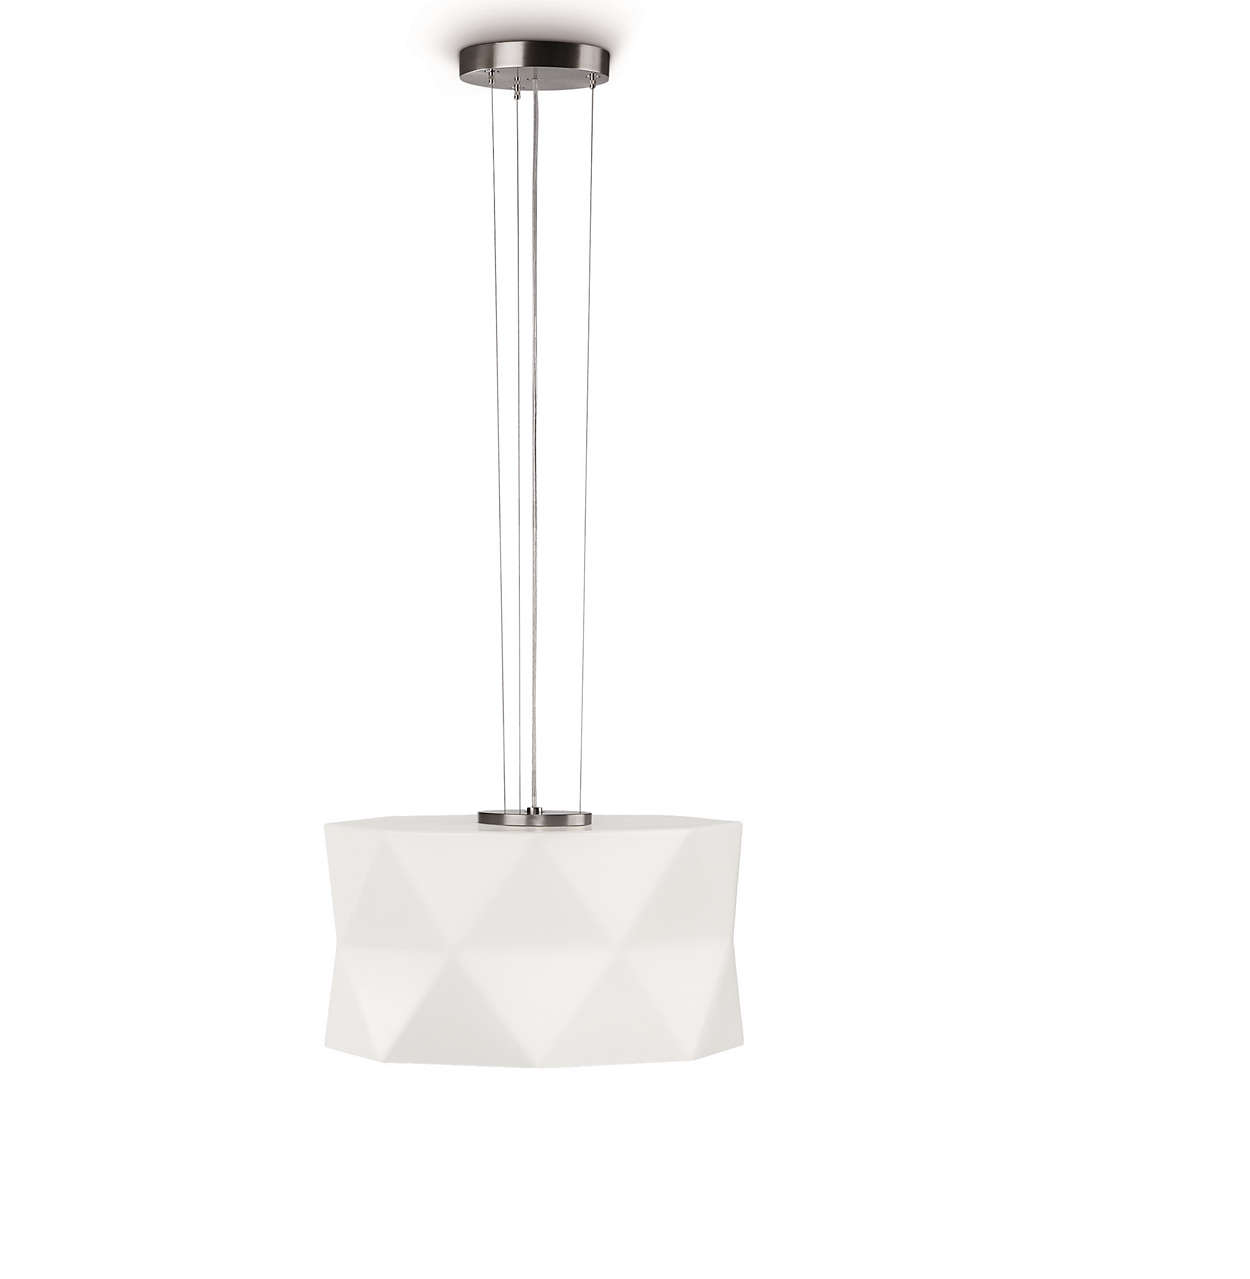 Rossini 1-light Pendant in Matte Chrome finish